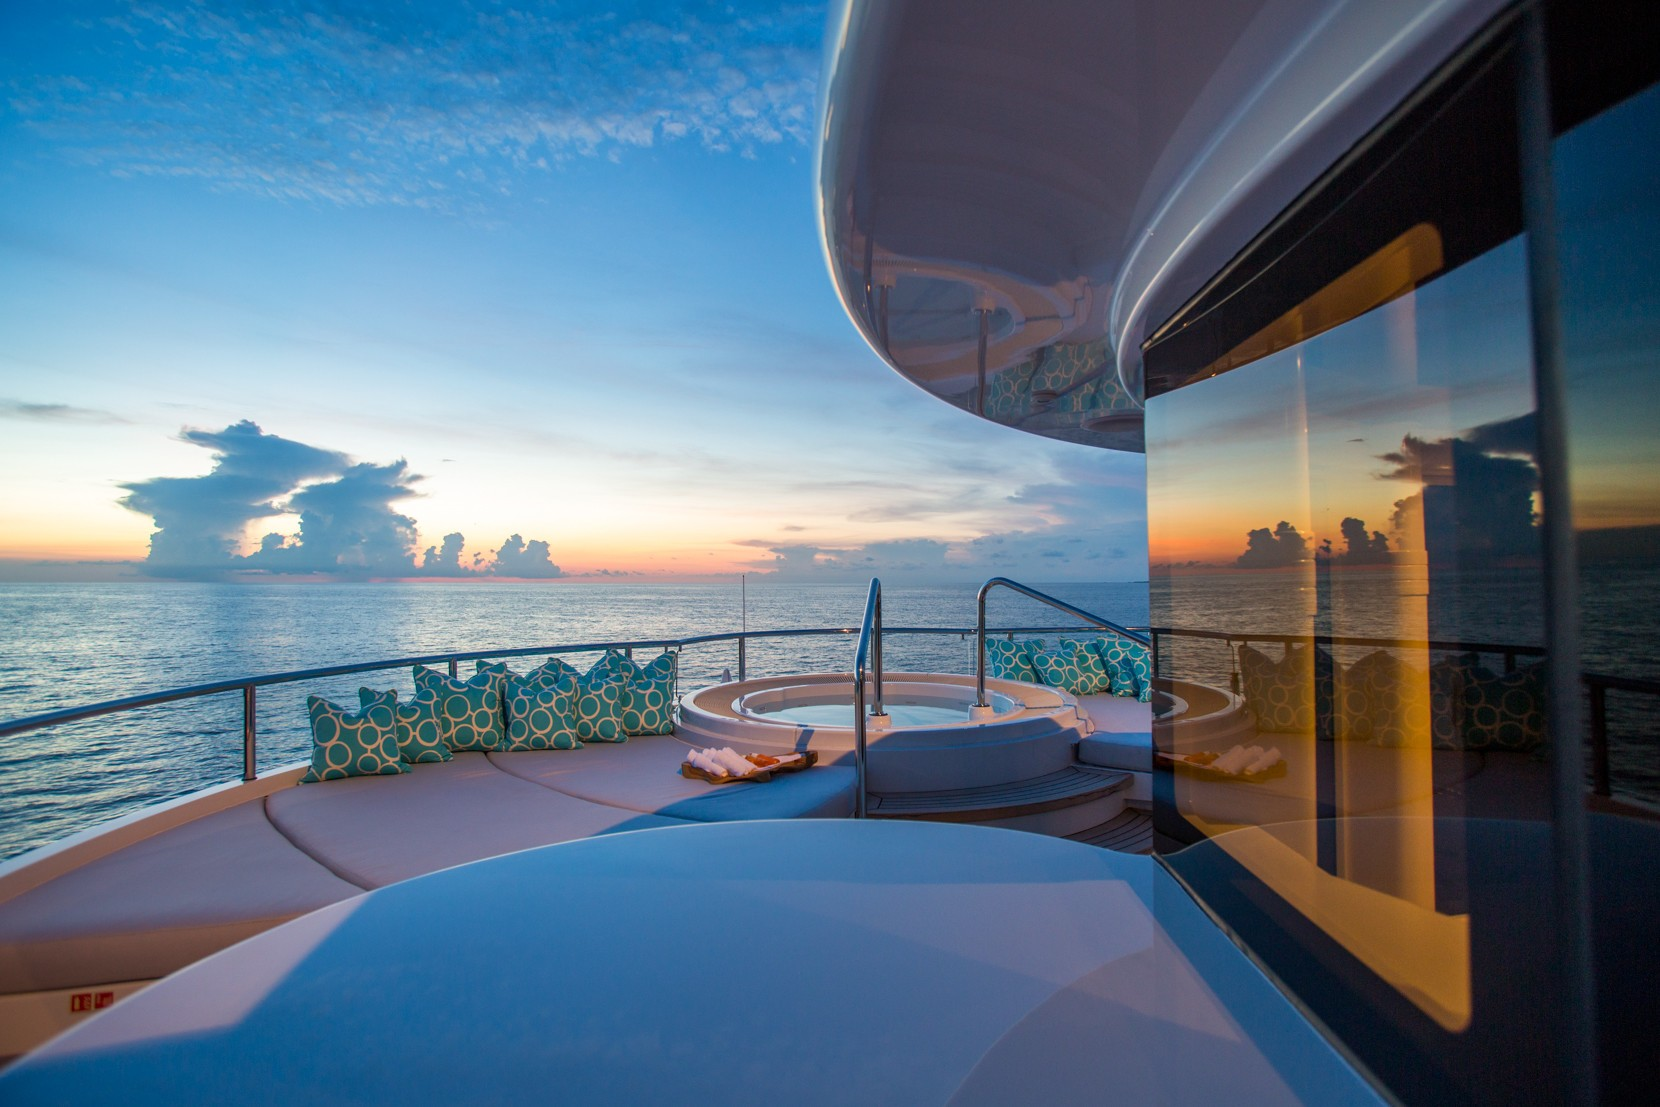 View from the Jacuzzi at sunset